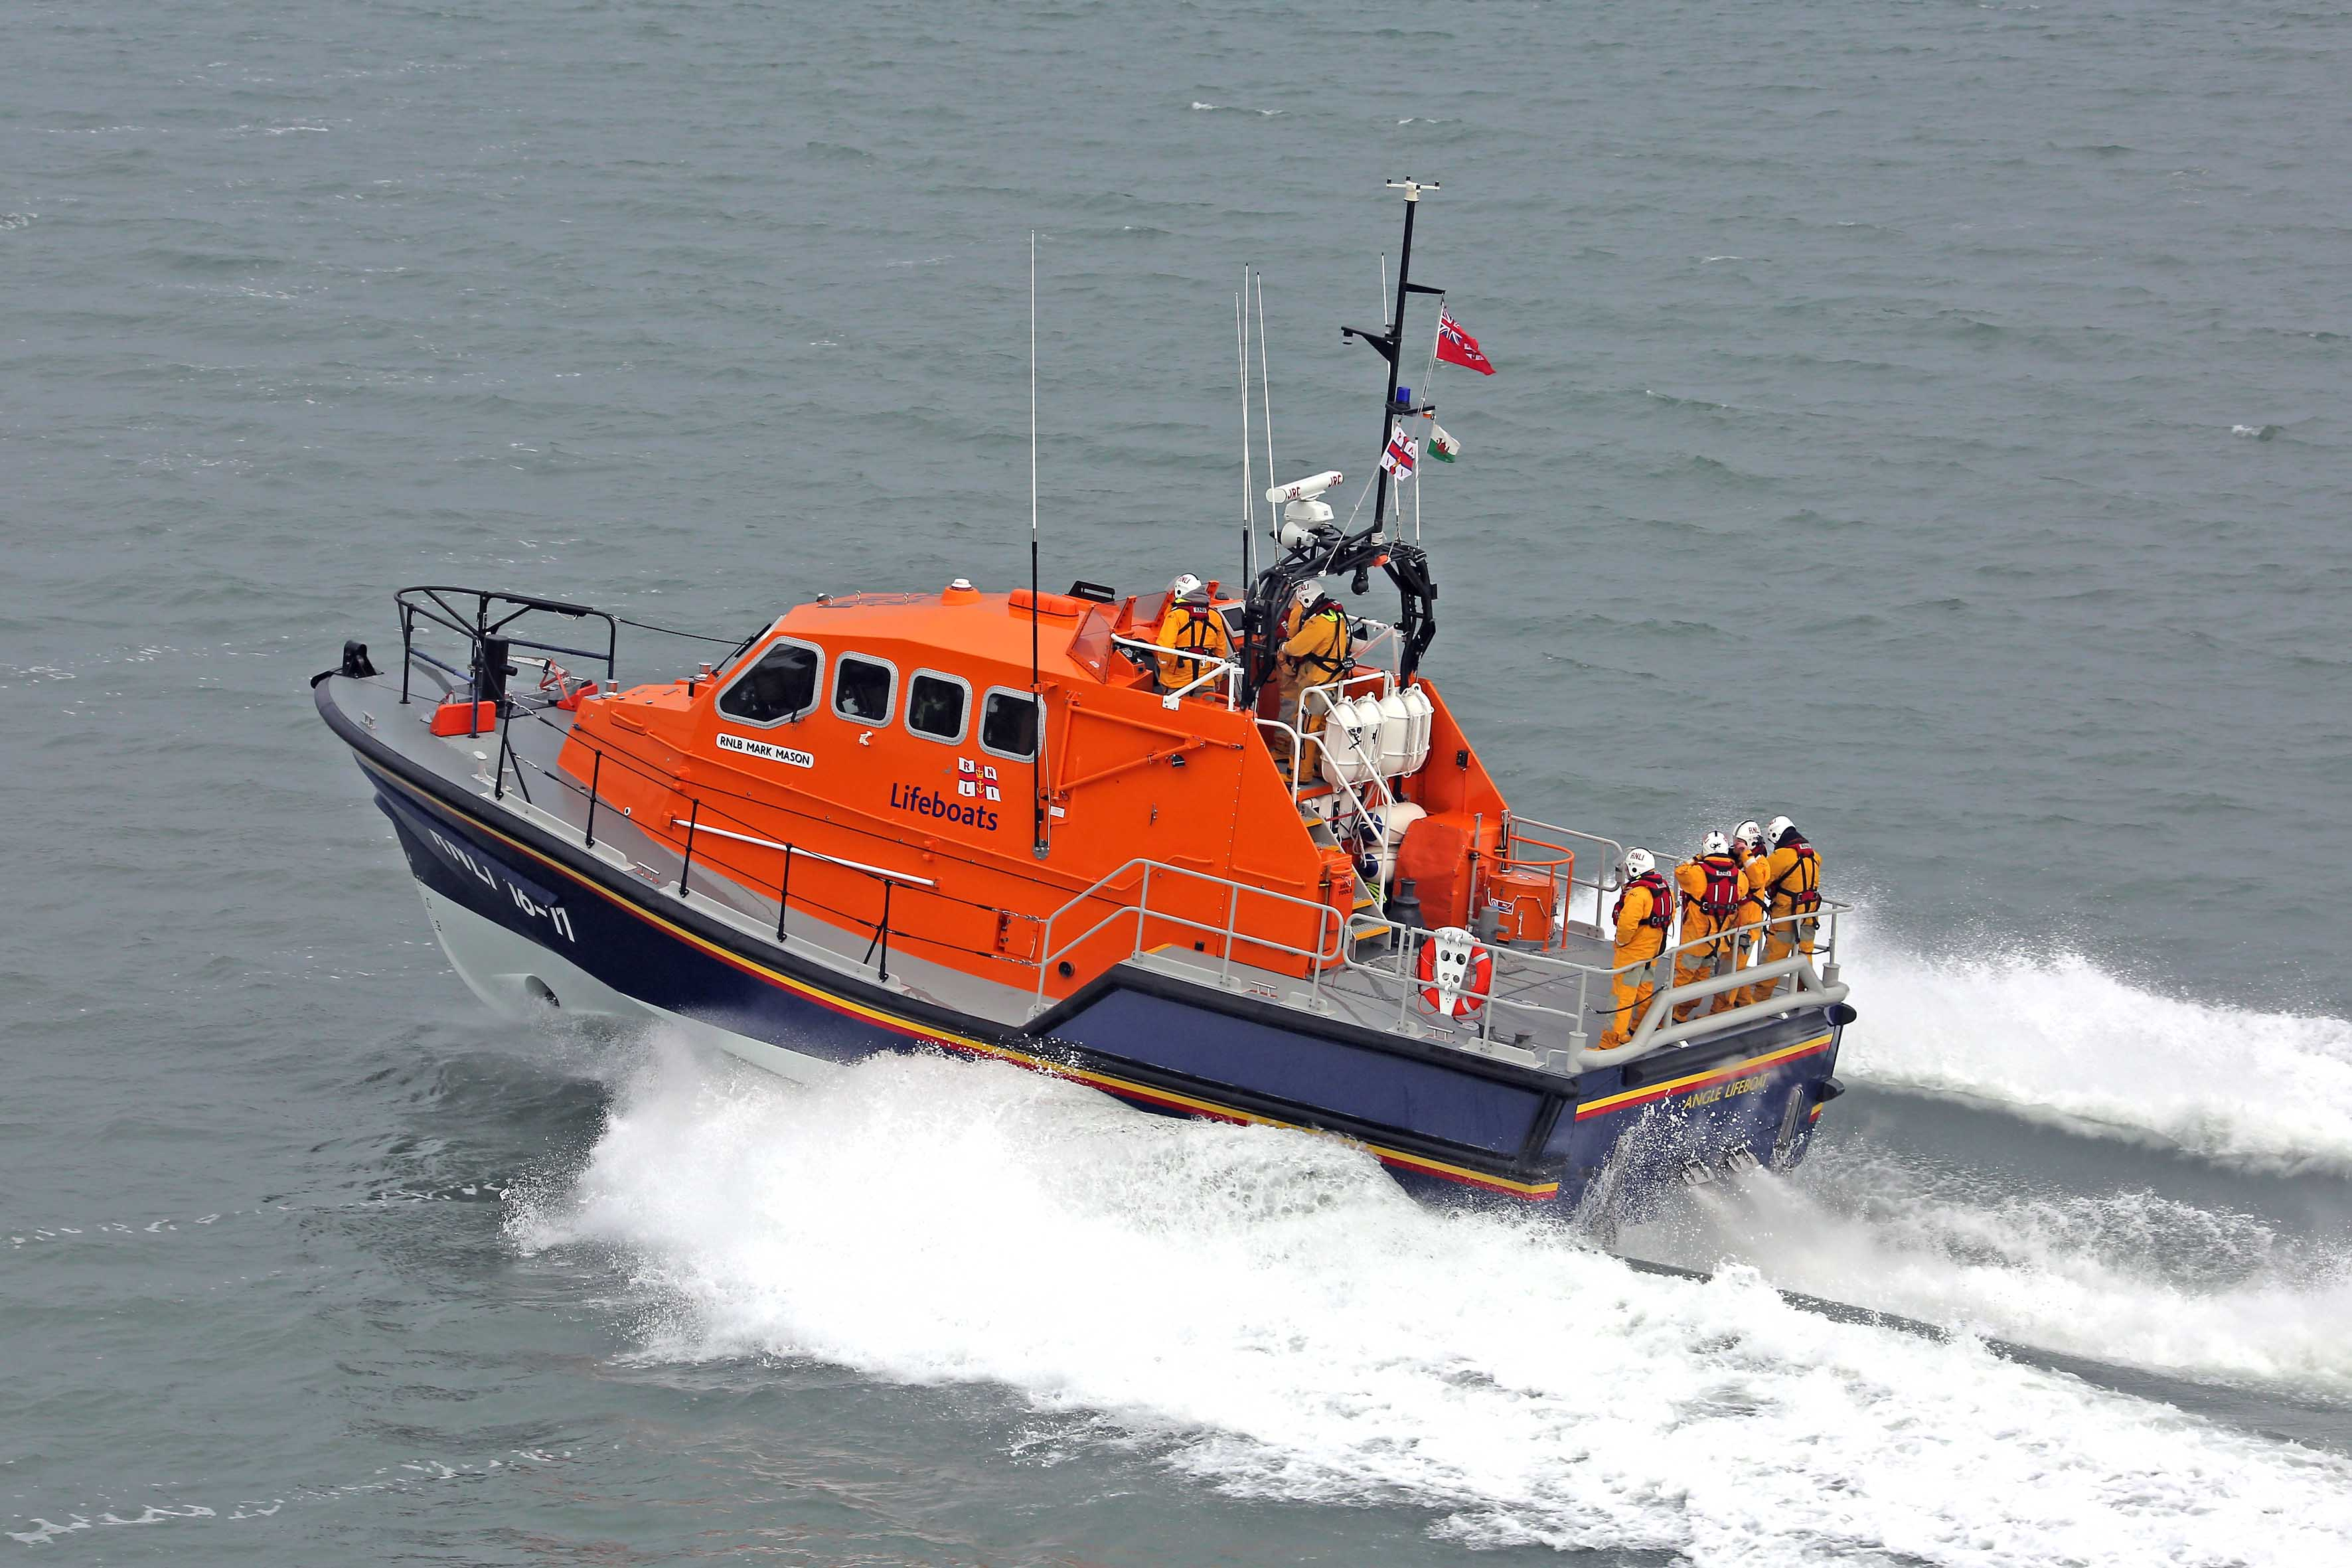 Angle RNLI's Tamar class all weather lifeboat Mark Mason, which went to the aid of a drifting fishing vessel 50 miles off St Ann's Head.